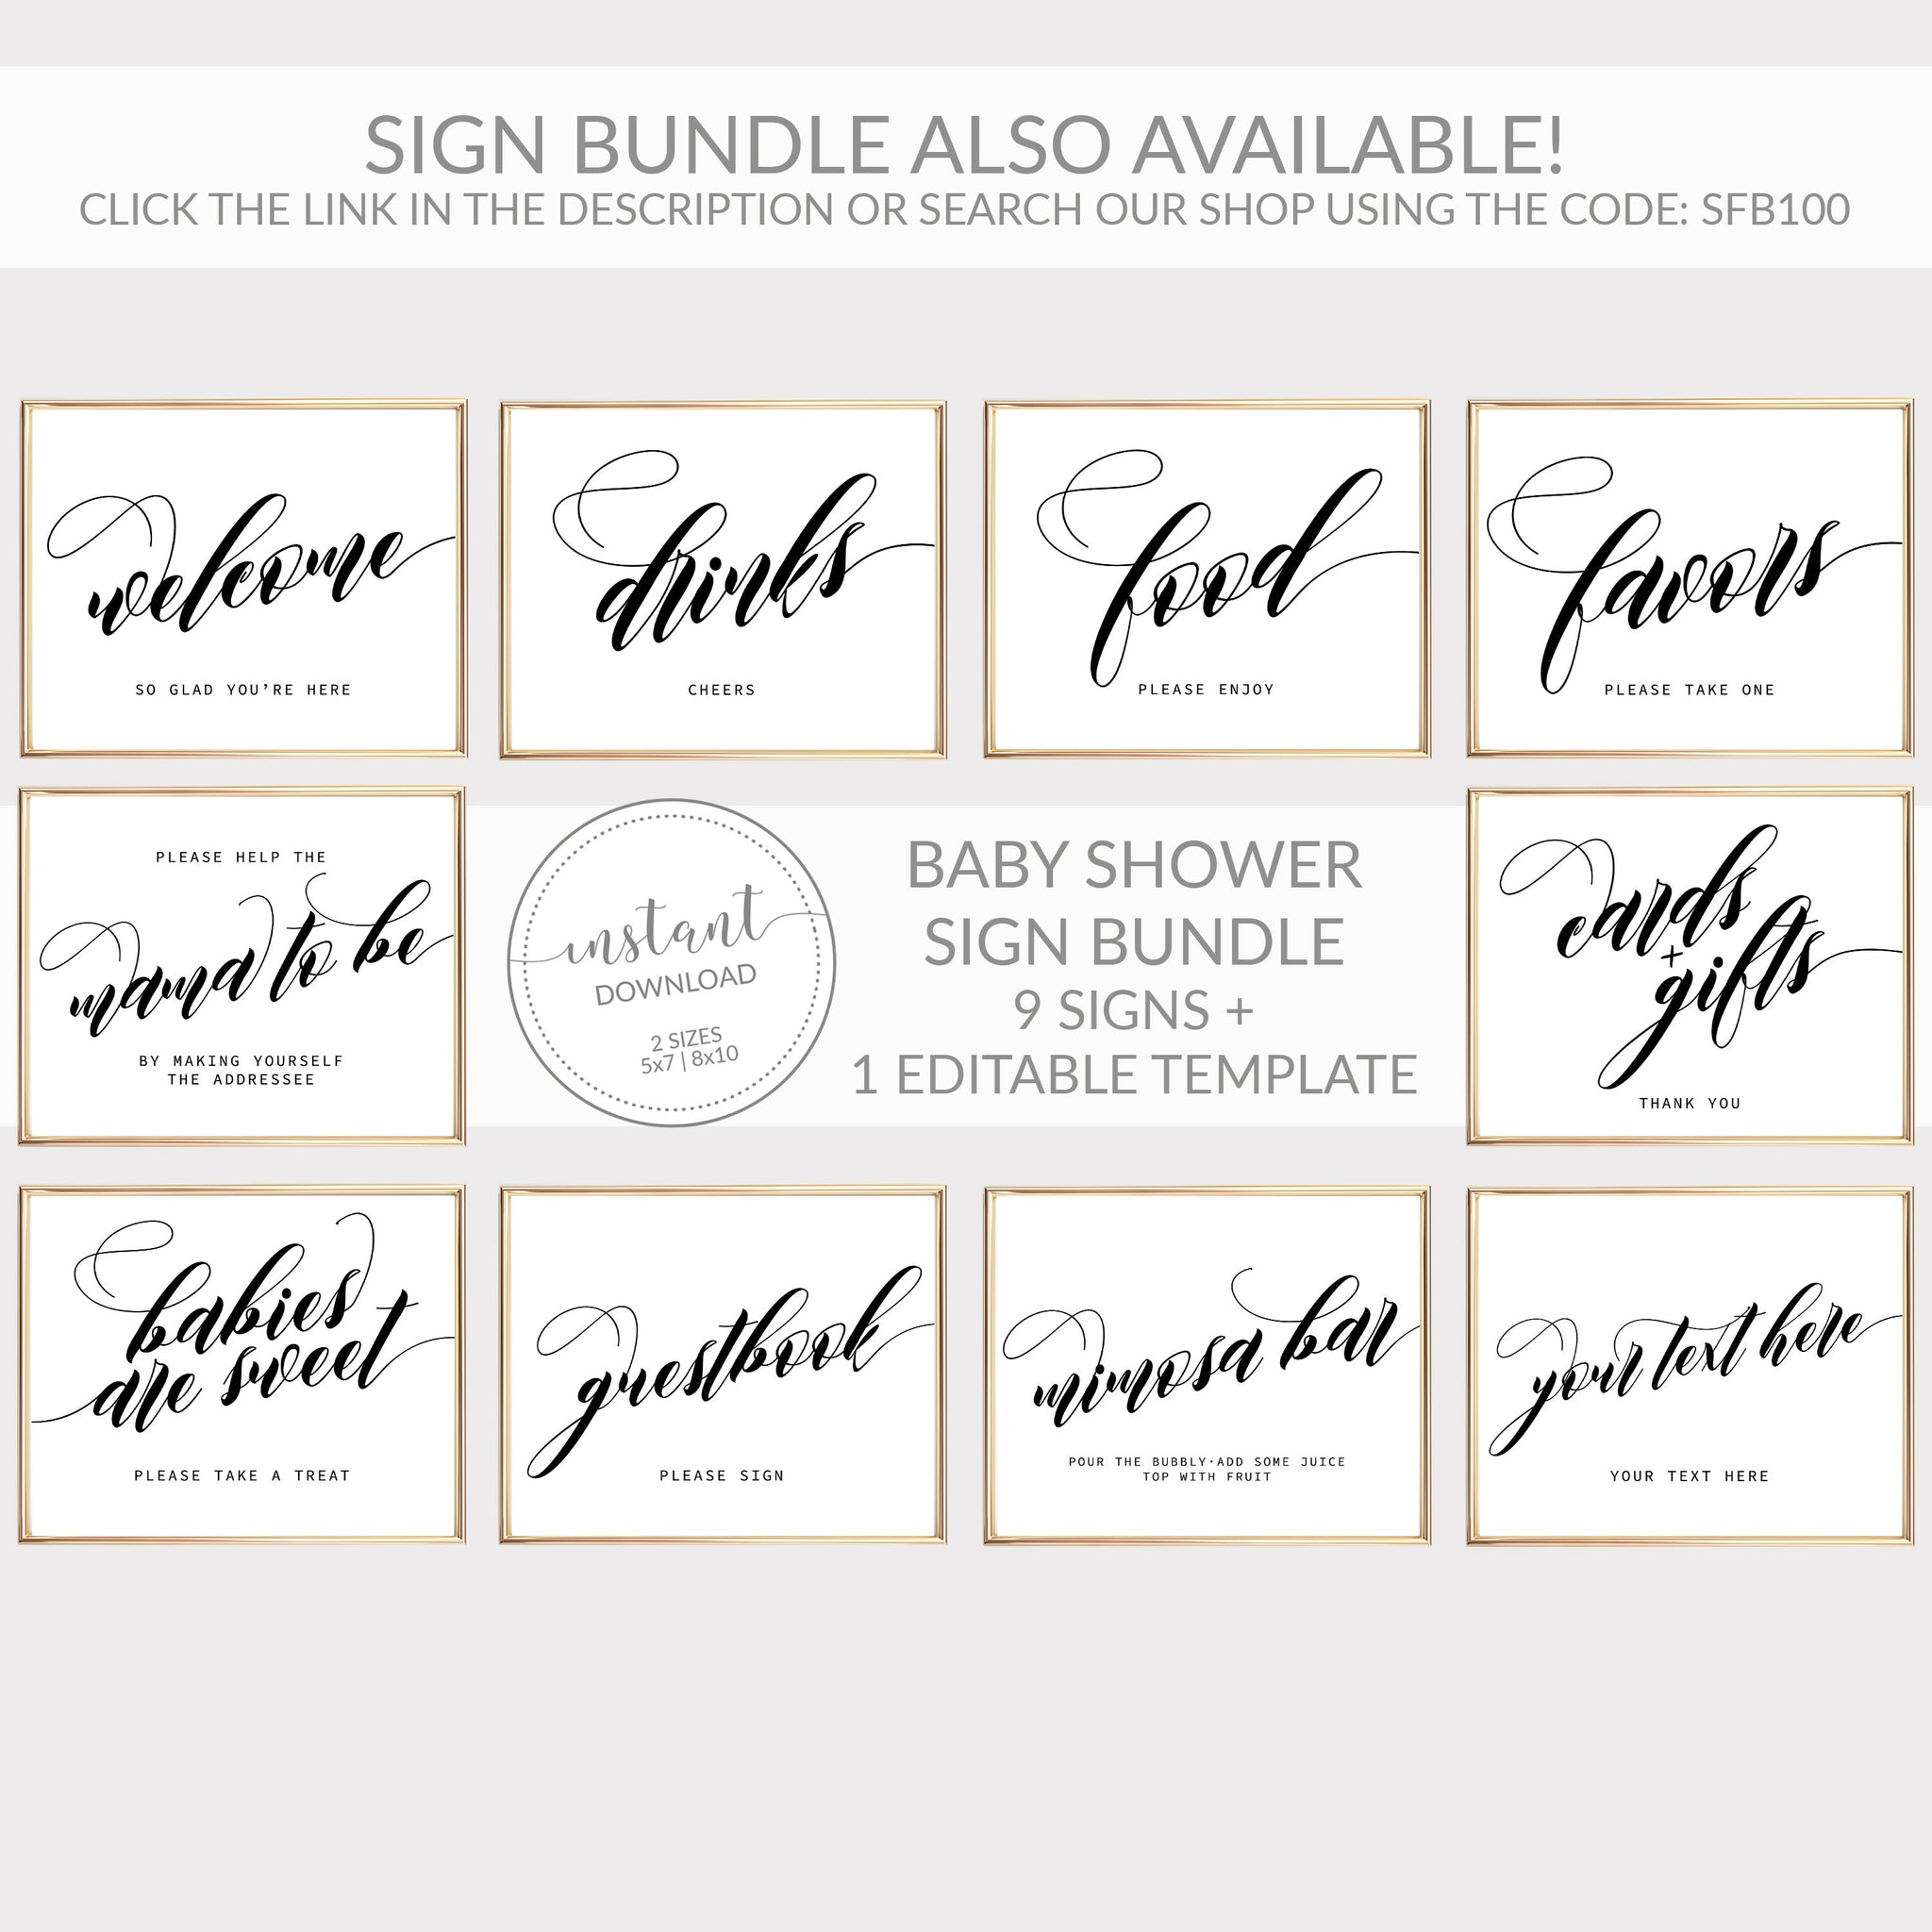 Food Sign Wedding, Minimalist Wedding Food Sign, Bridal Shower Decor, Food Sign Printable, INSTANT DOWNLOAD - SFB100 - @PlumPolkaDot